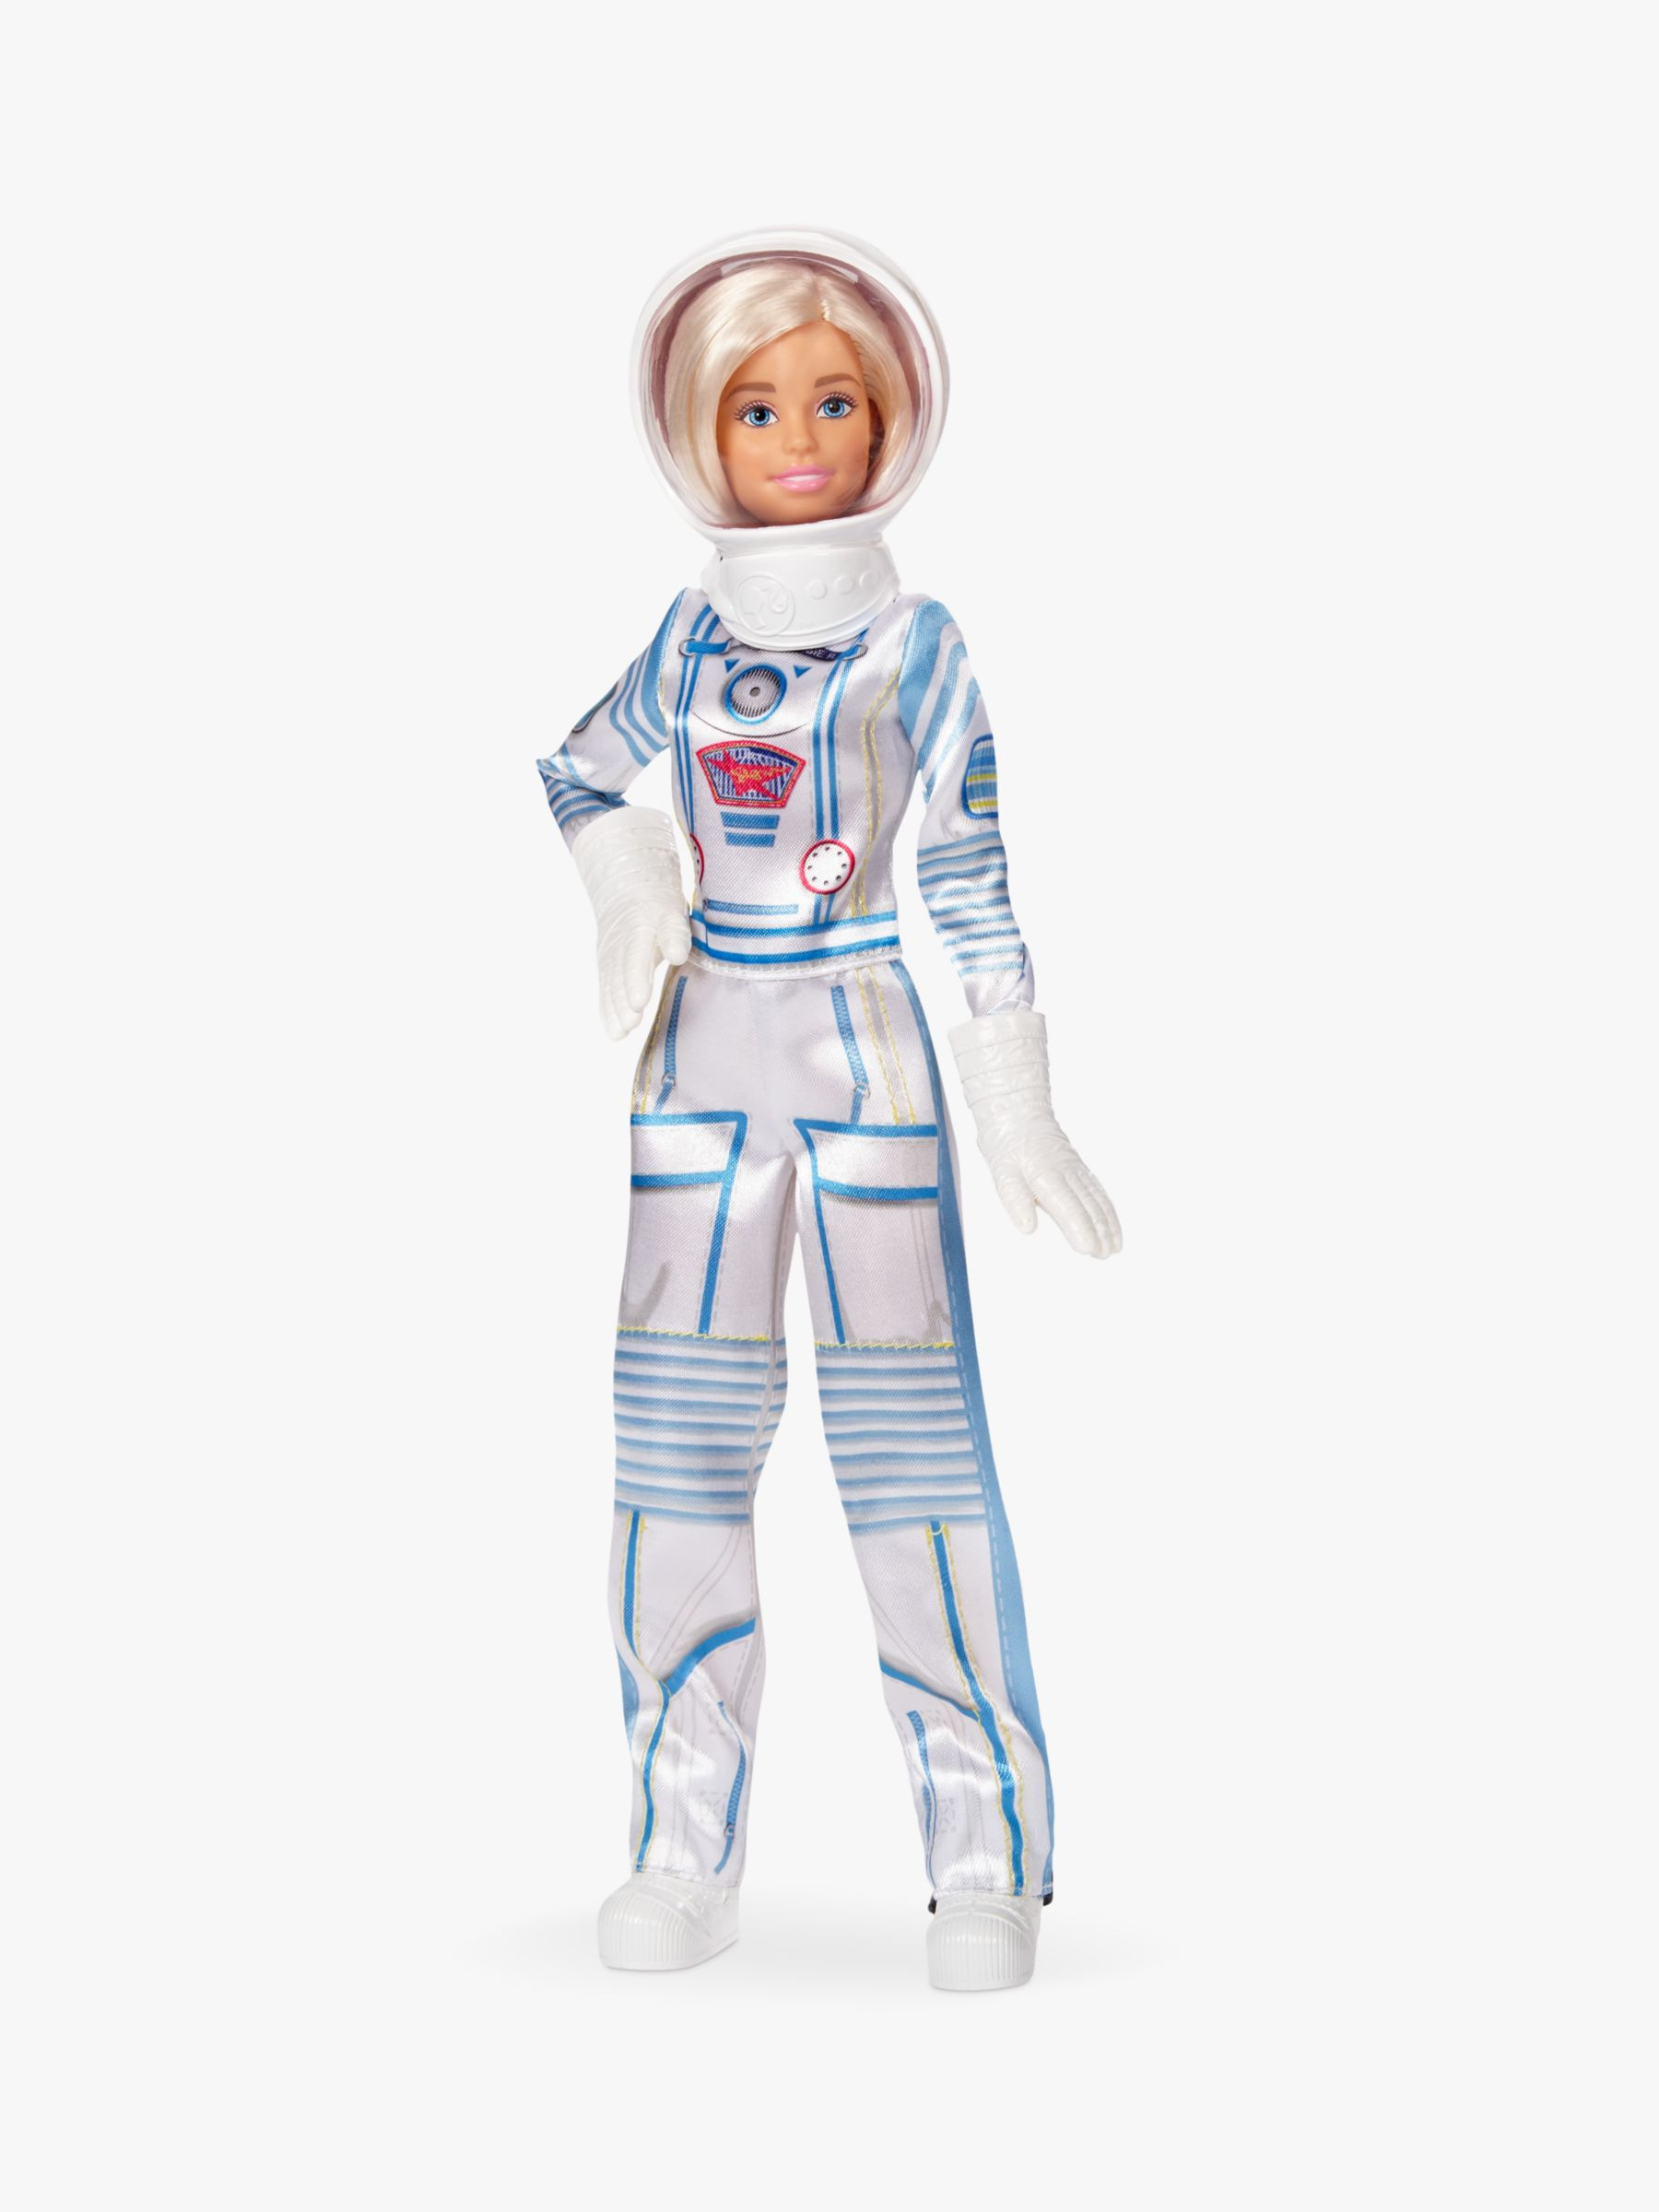 Barbie Astronaut Childs Costume X-Small